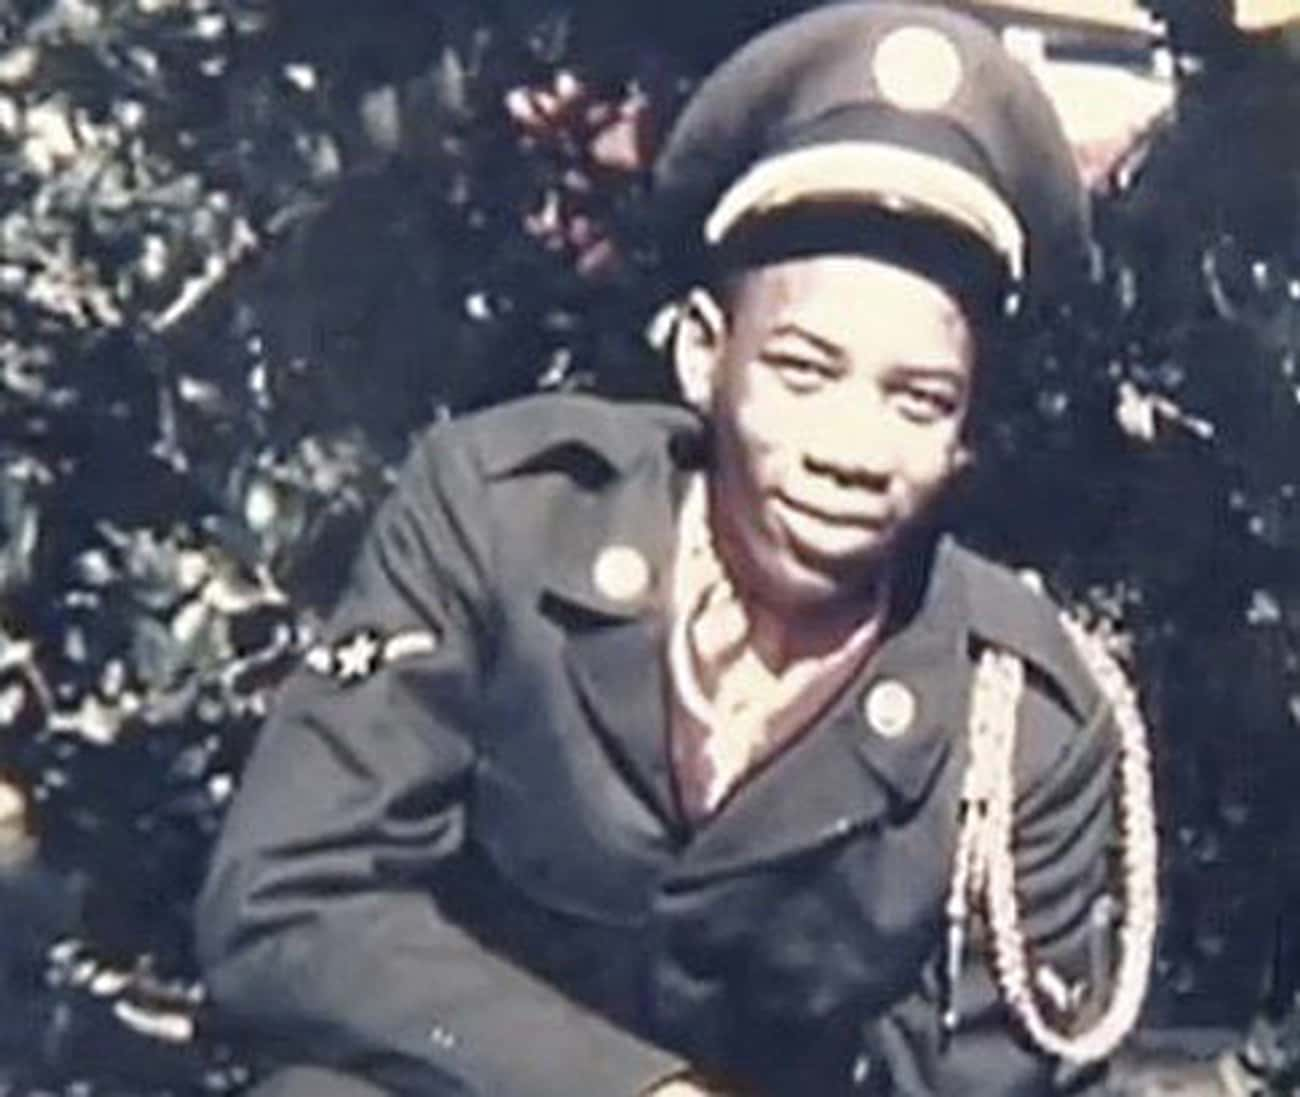 Young Morgan Freeman Playing H is listed (or ranked) 4 on the list 5 Photos of Young Morgan Freeman